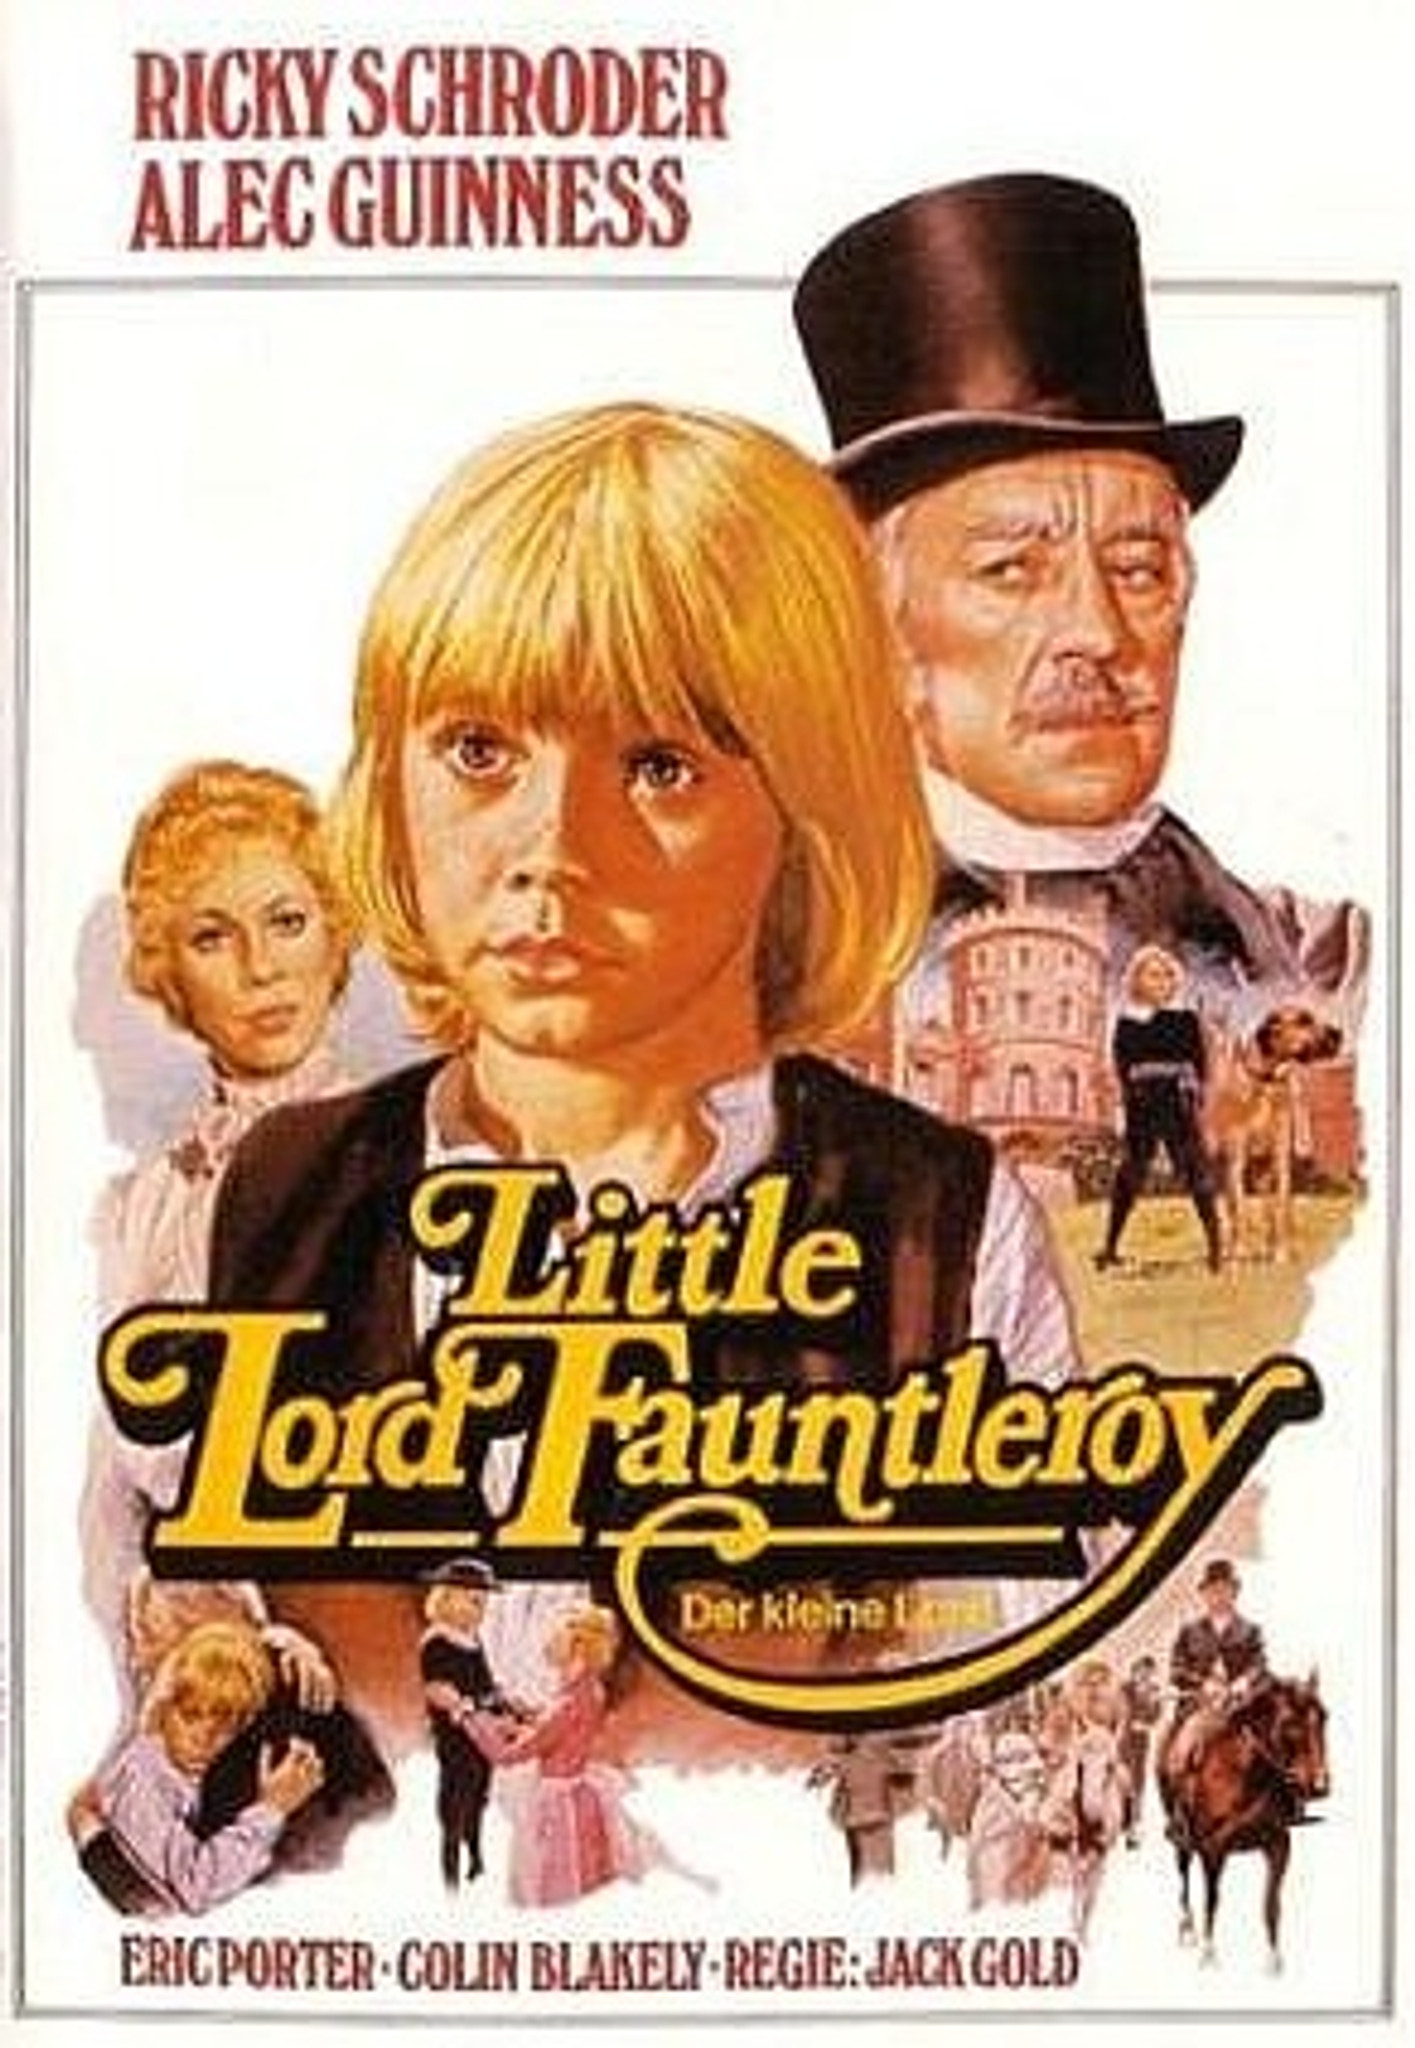 Fauntleroy Little DVD Schroeder Lord 1980 Ricky